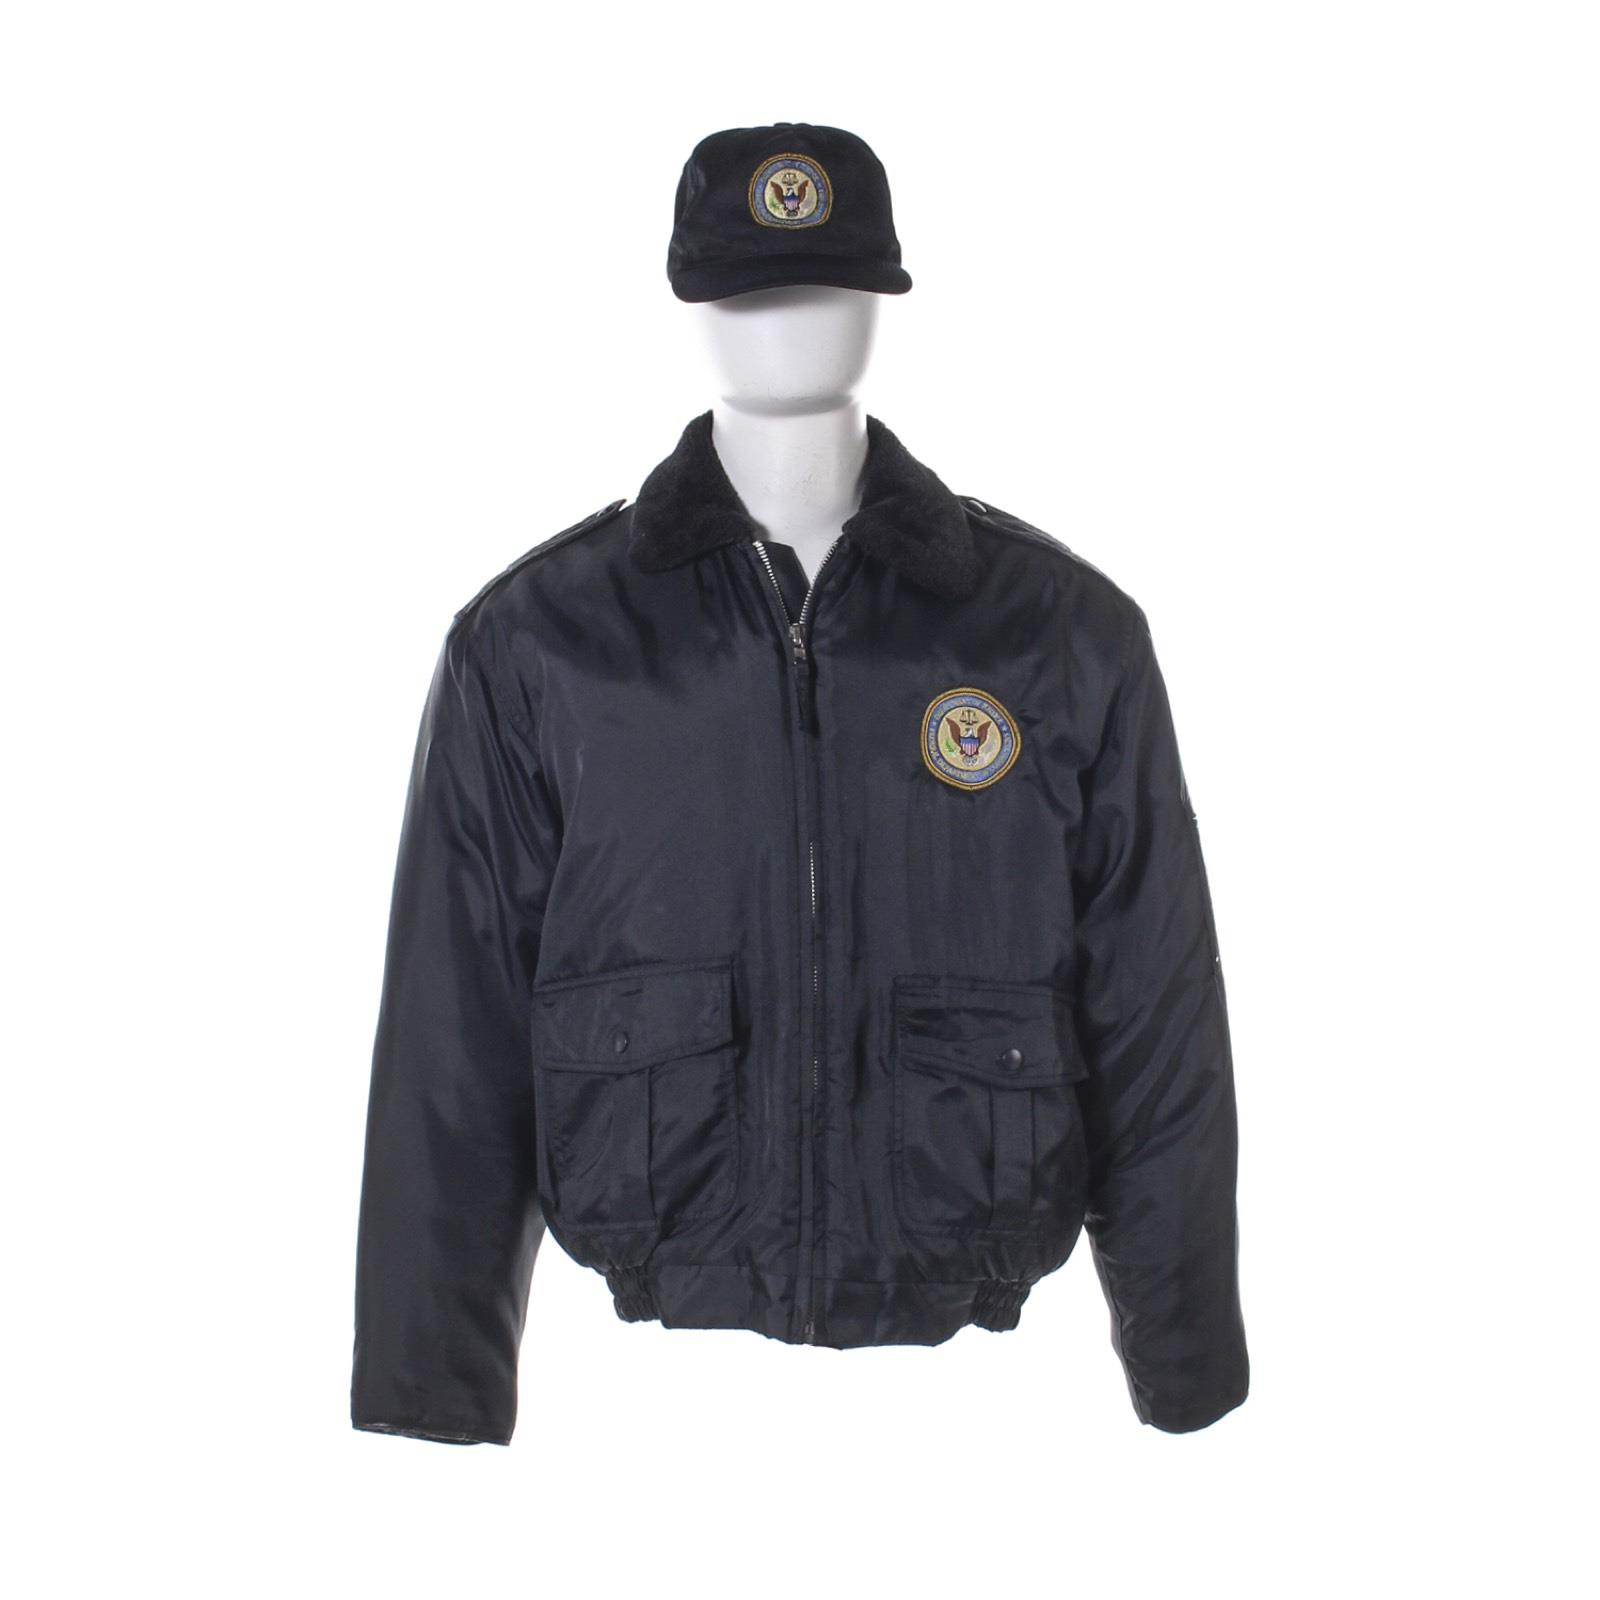 OITNB-CO-Blake-Nick-Dillenburg-Screen-Worn-Dept-Of-Corrections-Jacket-amp-Hat-Ss-6